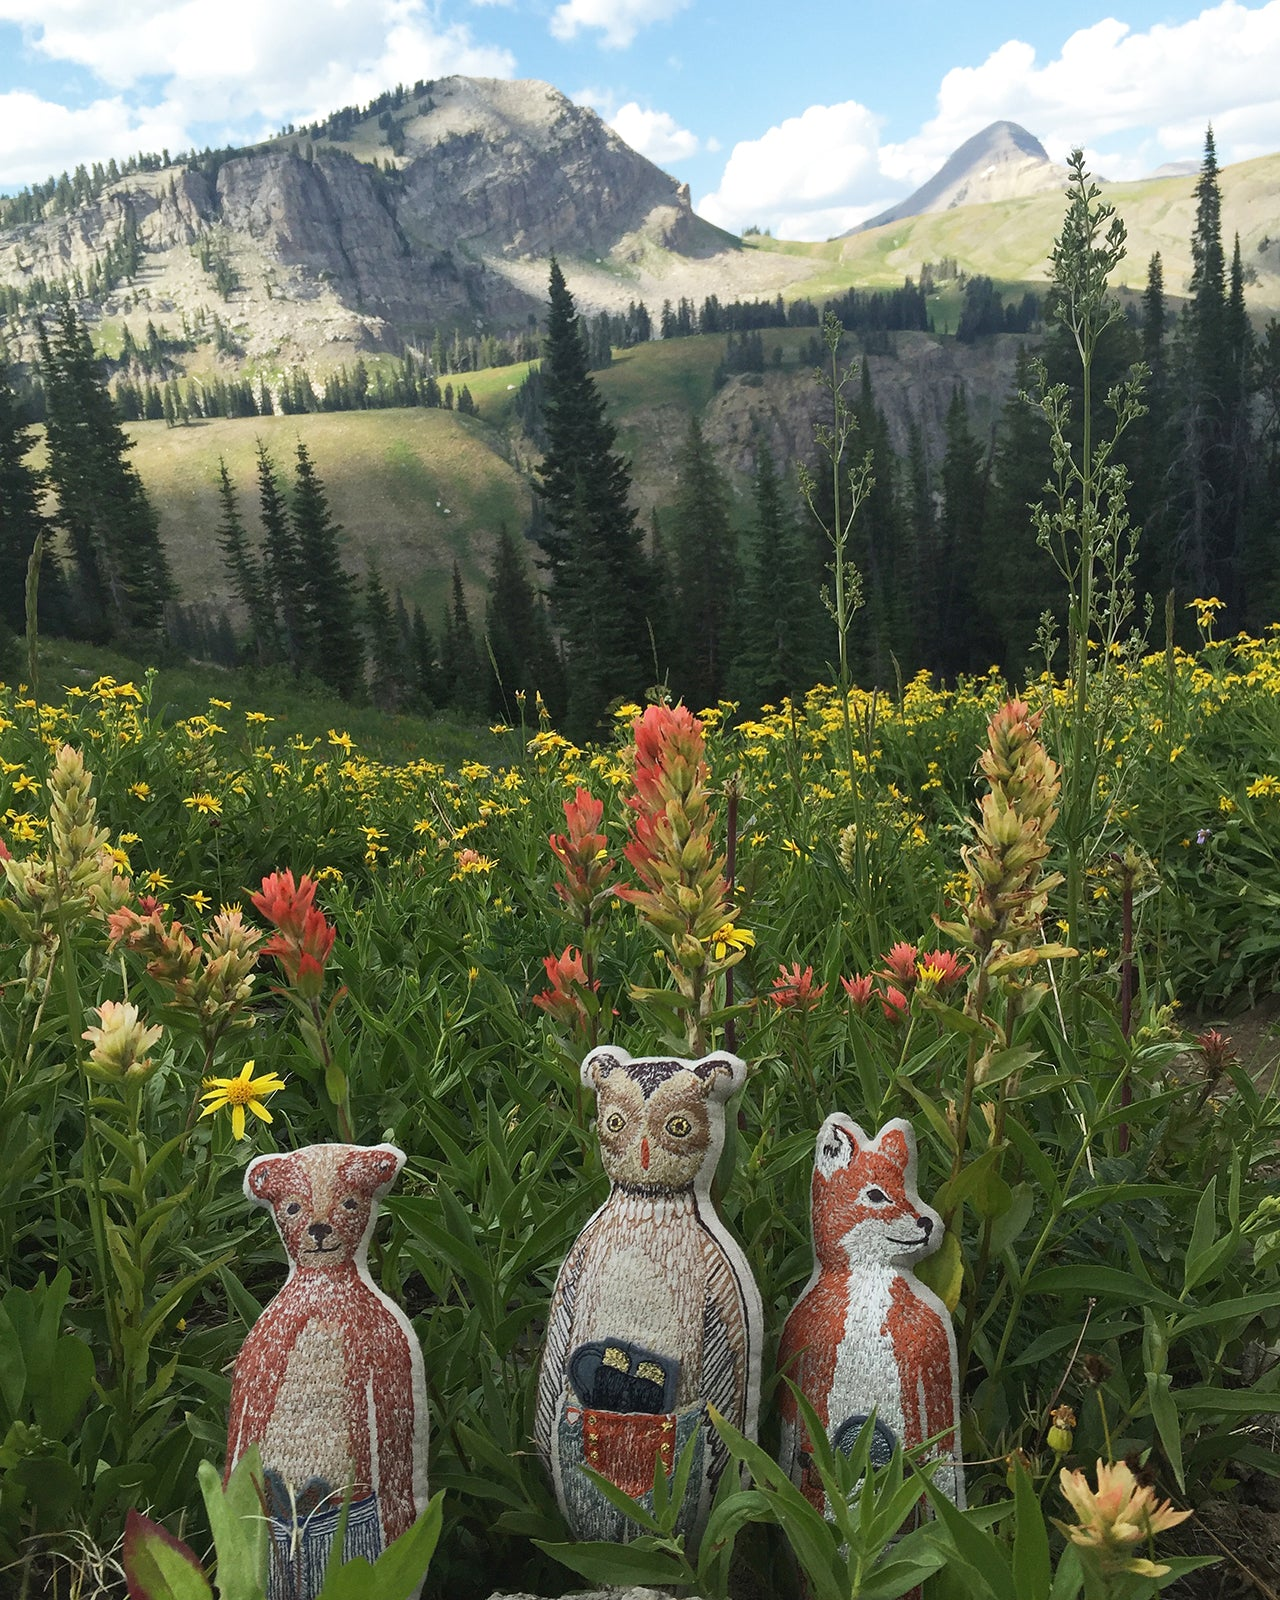 Coral & Tusk Pocket Dolls at Grand Teton National Park - Marion Lake Trail